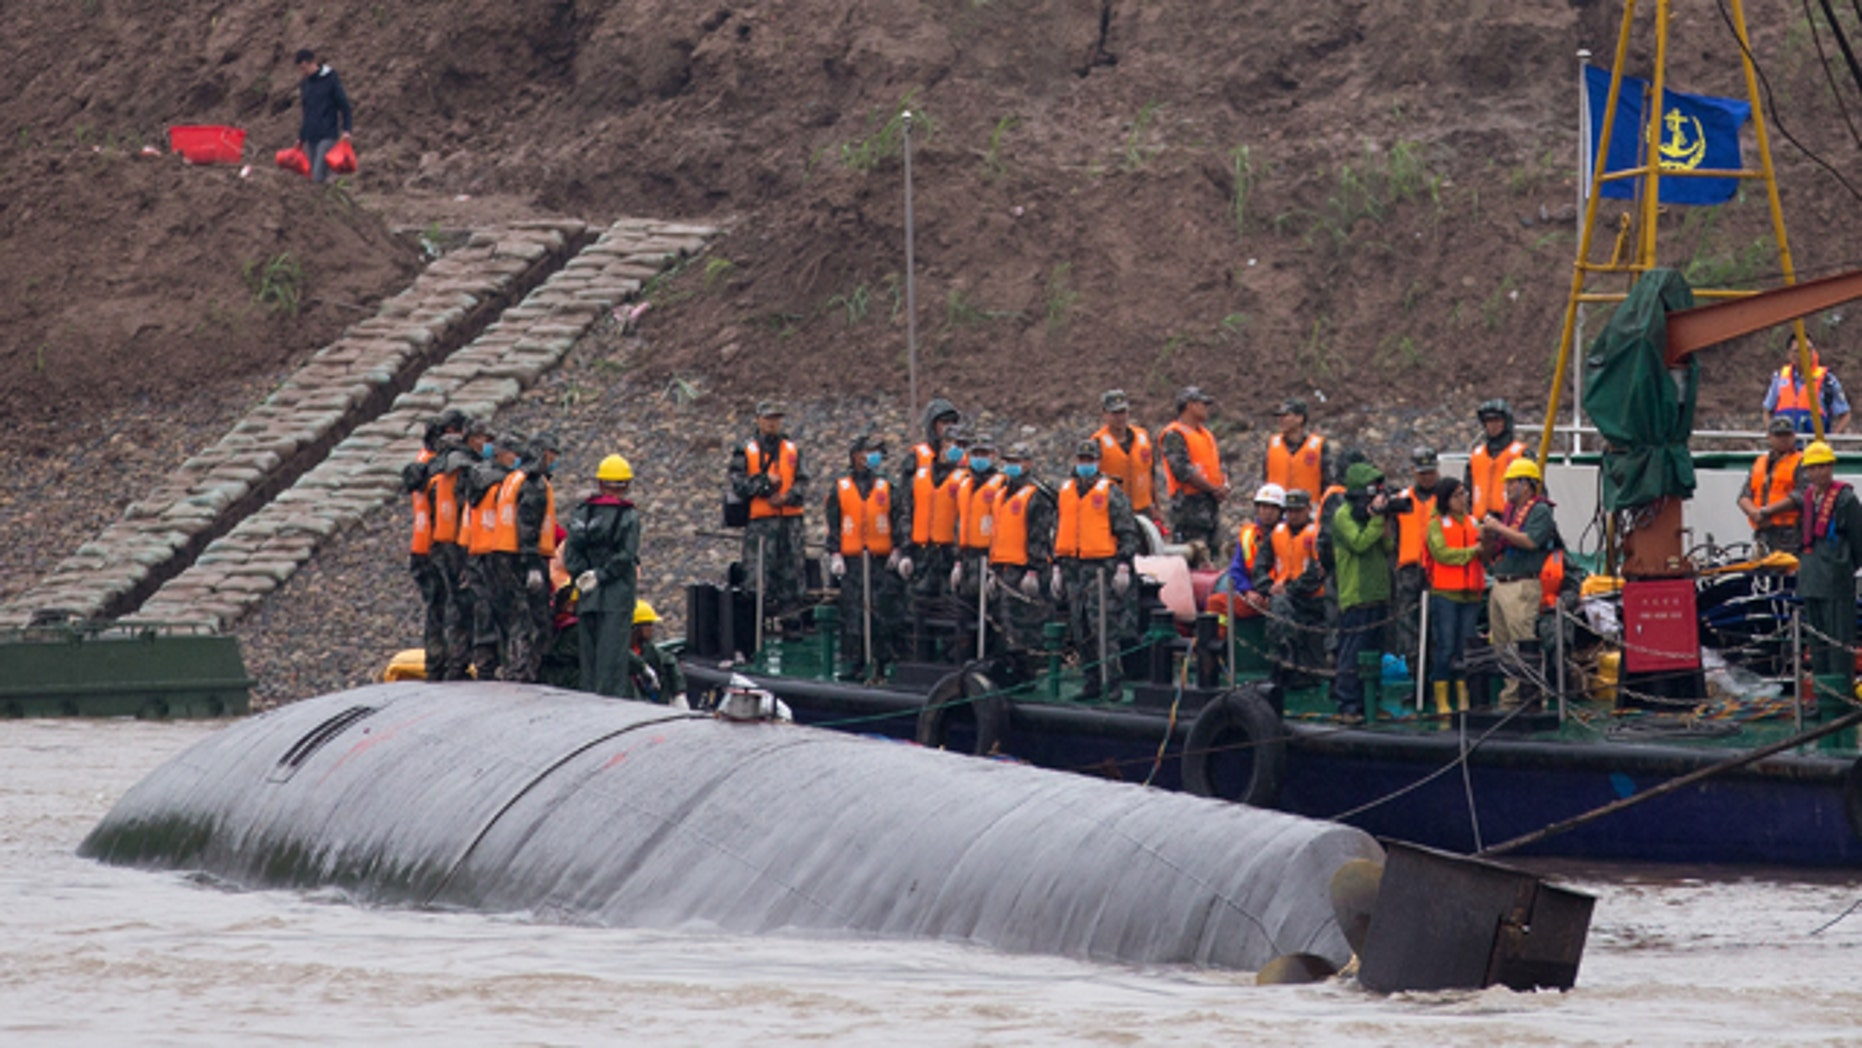 June 3, 2015: Rescue workers gather on the hull of a capsized cruise ship, center, on the Yangtze River in central China's Hubei province. (AP Photo/Andy Wong)